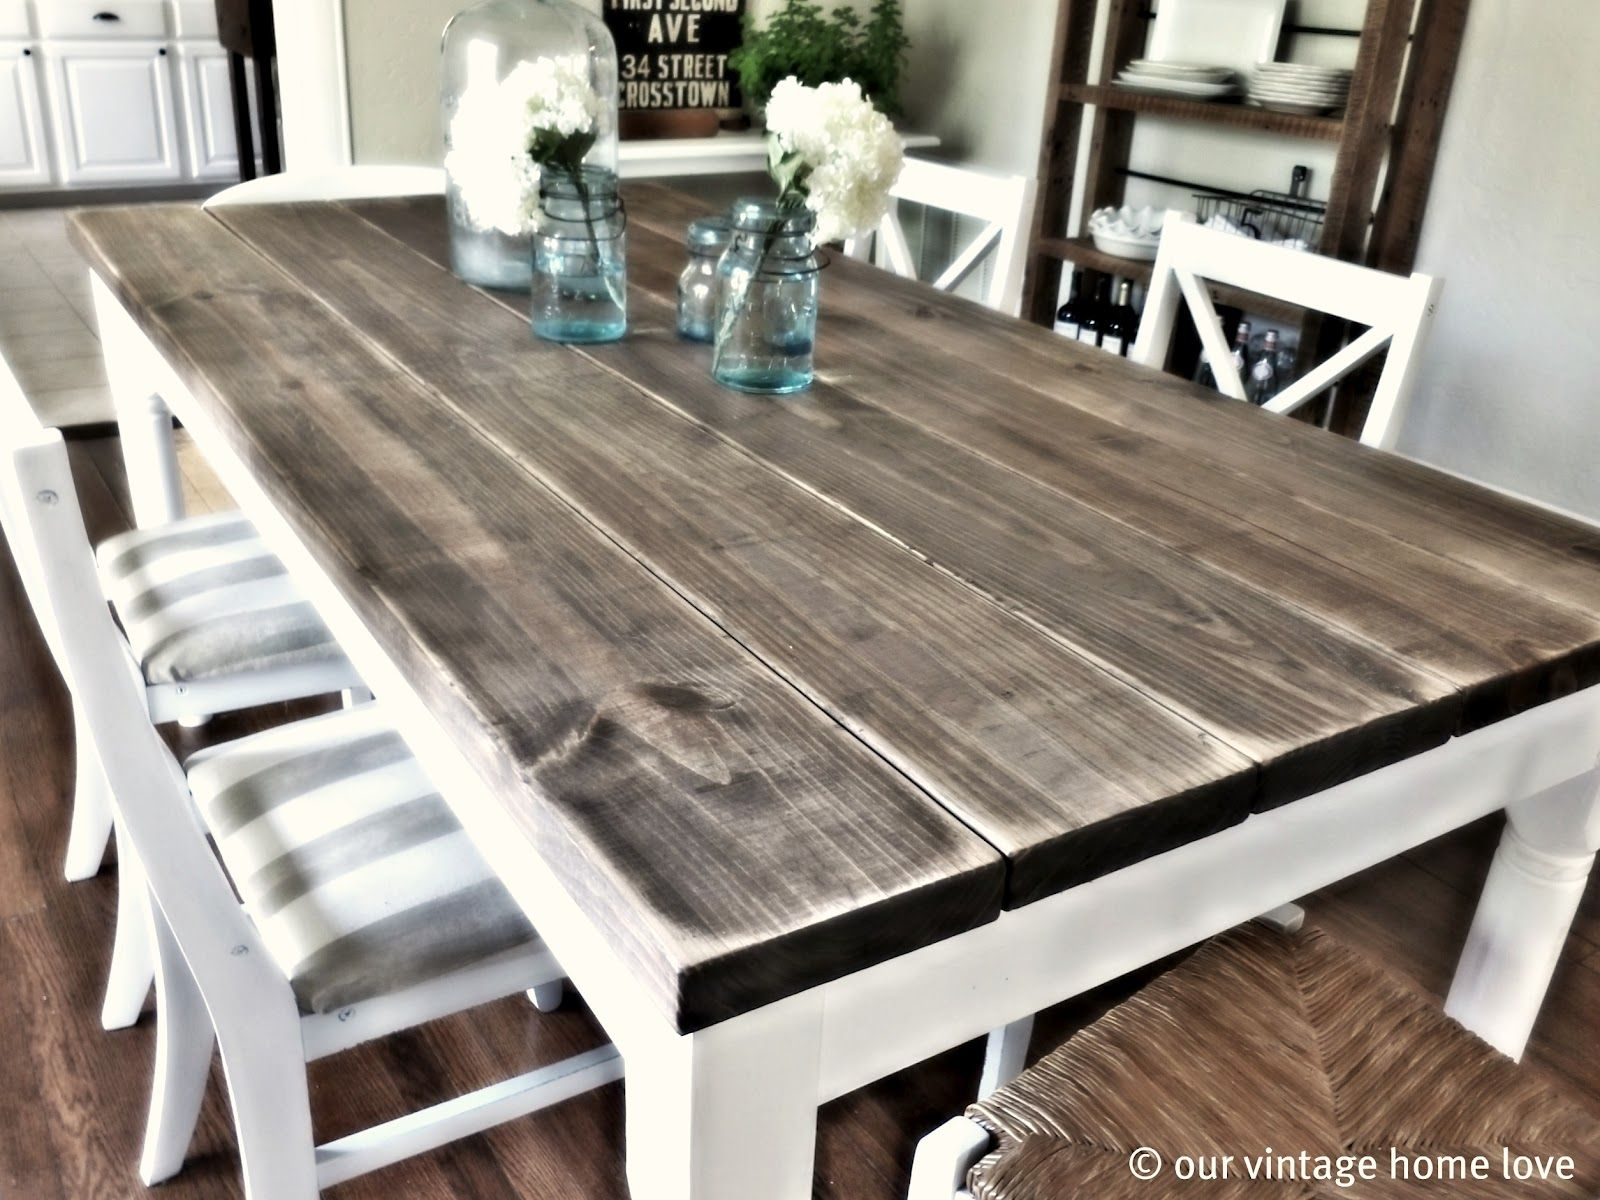 25 best ideas about barnwood dining table on pinterest kitchen table legs distressed dining tables and legs for tables - Diy Dining Room Table Plans